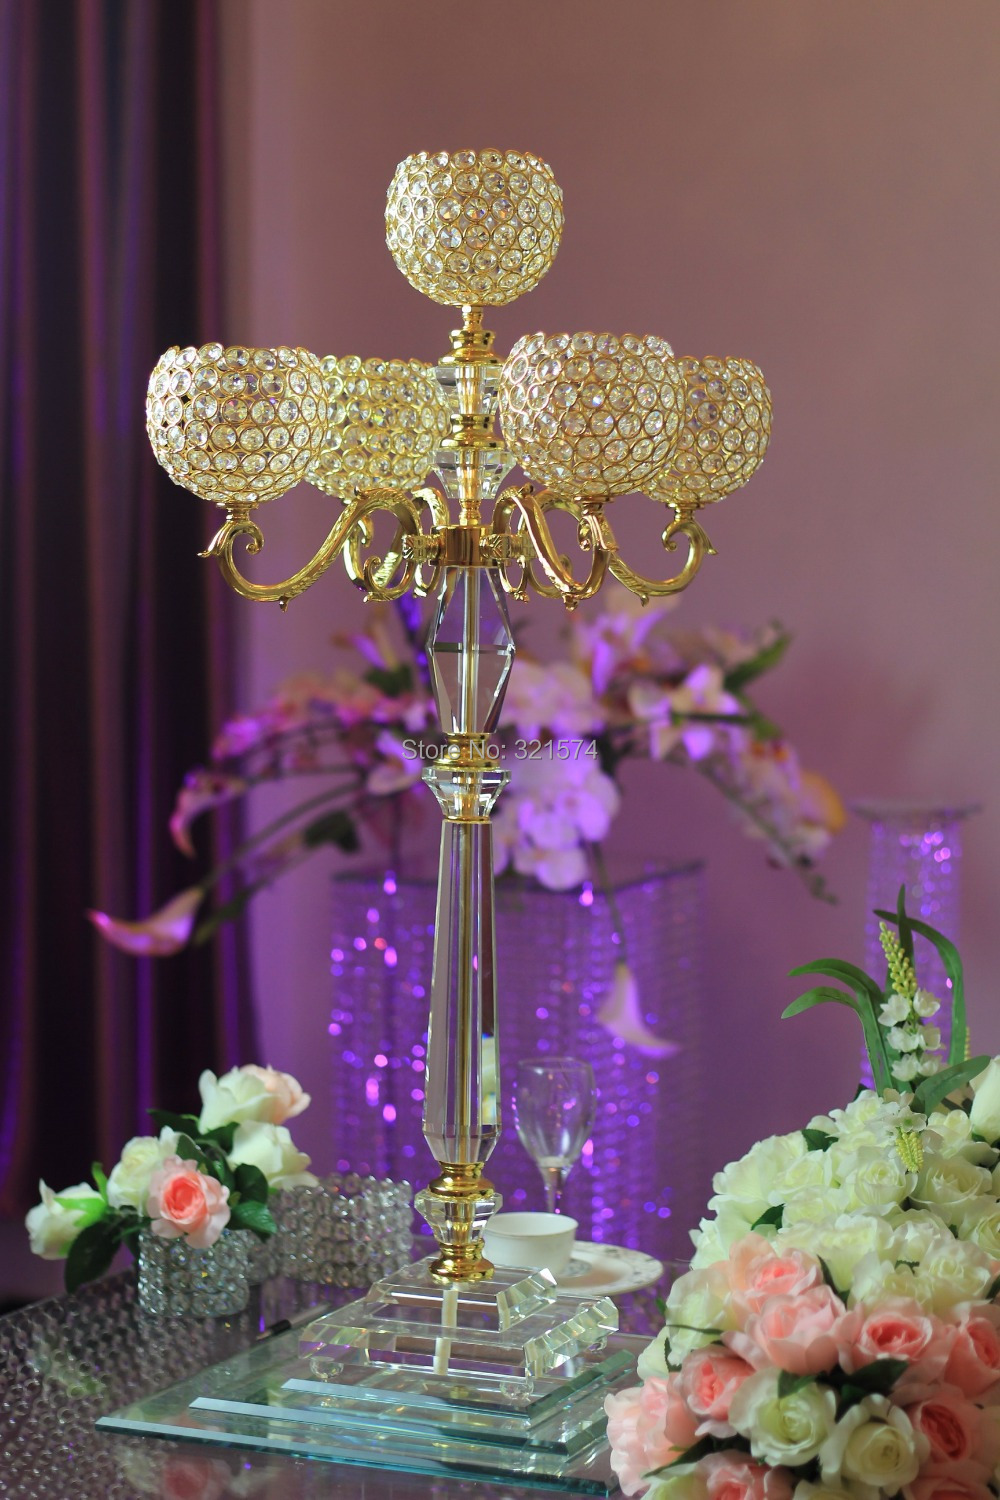 Wedding crystal globe centerpieces arm inch tall